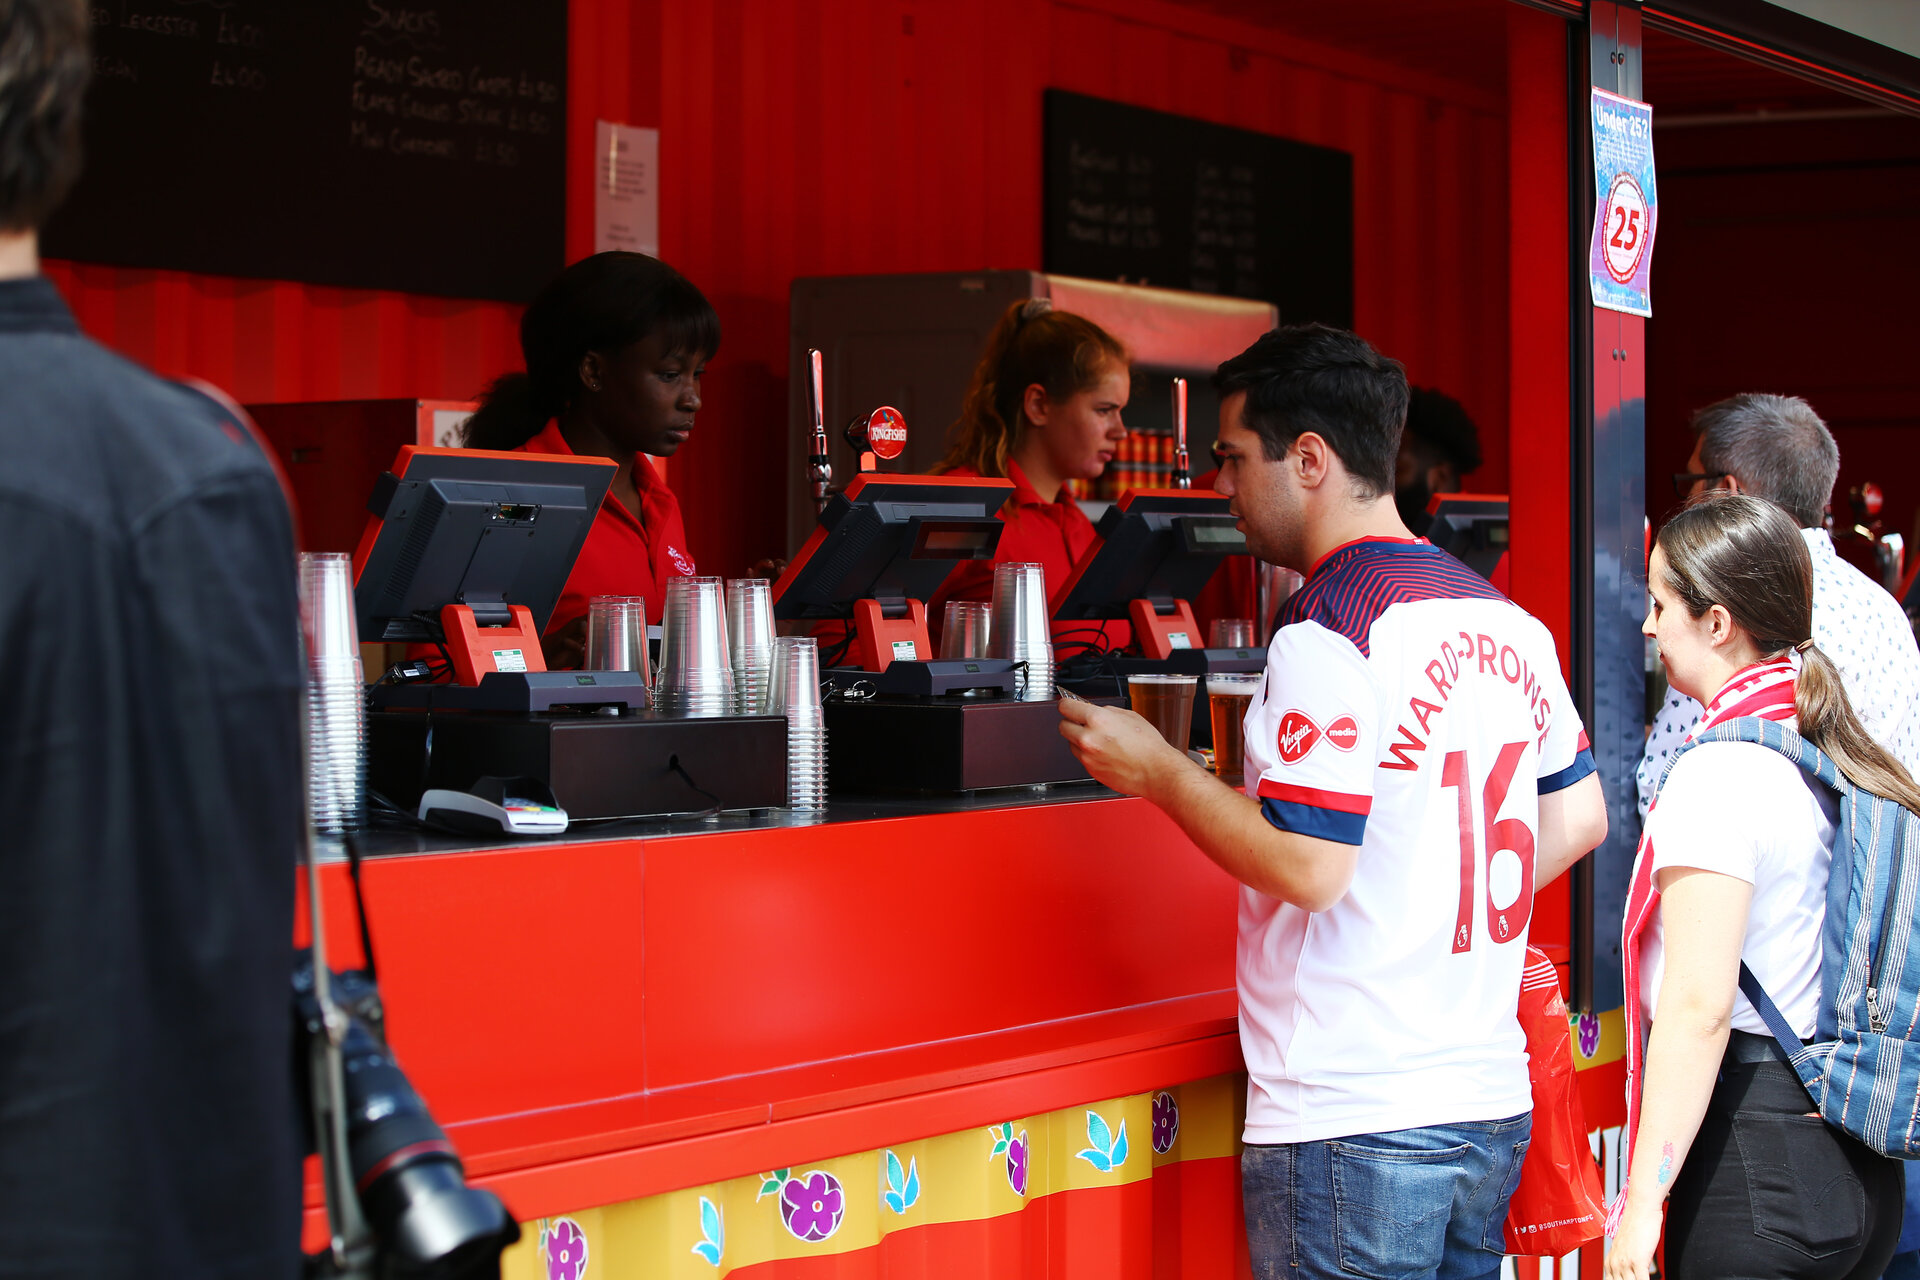 SOUTHAMPTON, ENGLAND - AUGUST 17: Bar staff inside the fan zone ahead of the Premier League match between Southampton FC and Liverpool FC at St Mary's Stadium on August 17, 2019 in Southampton, United Kingdom. (Photo by James Bridle - Southampton FC/Southampton FC via Getty Images)